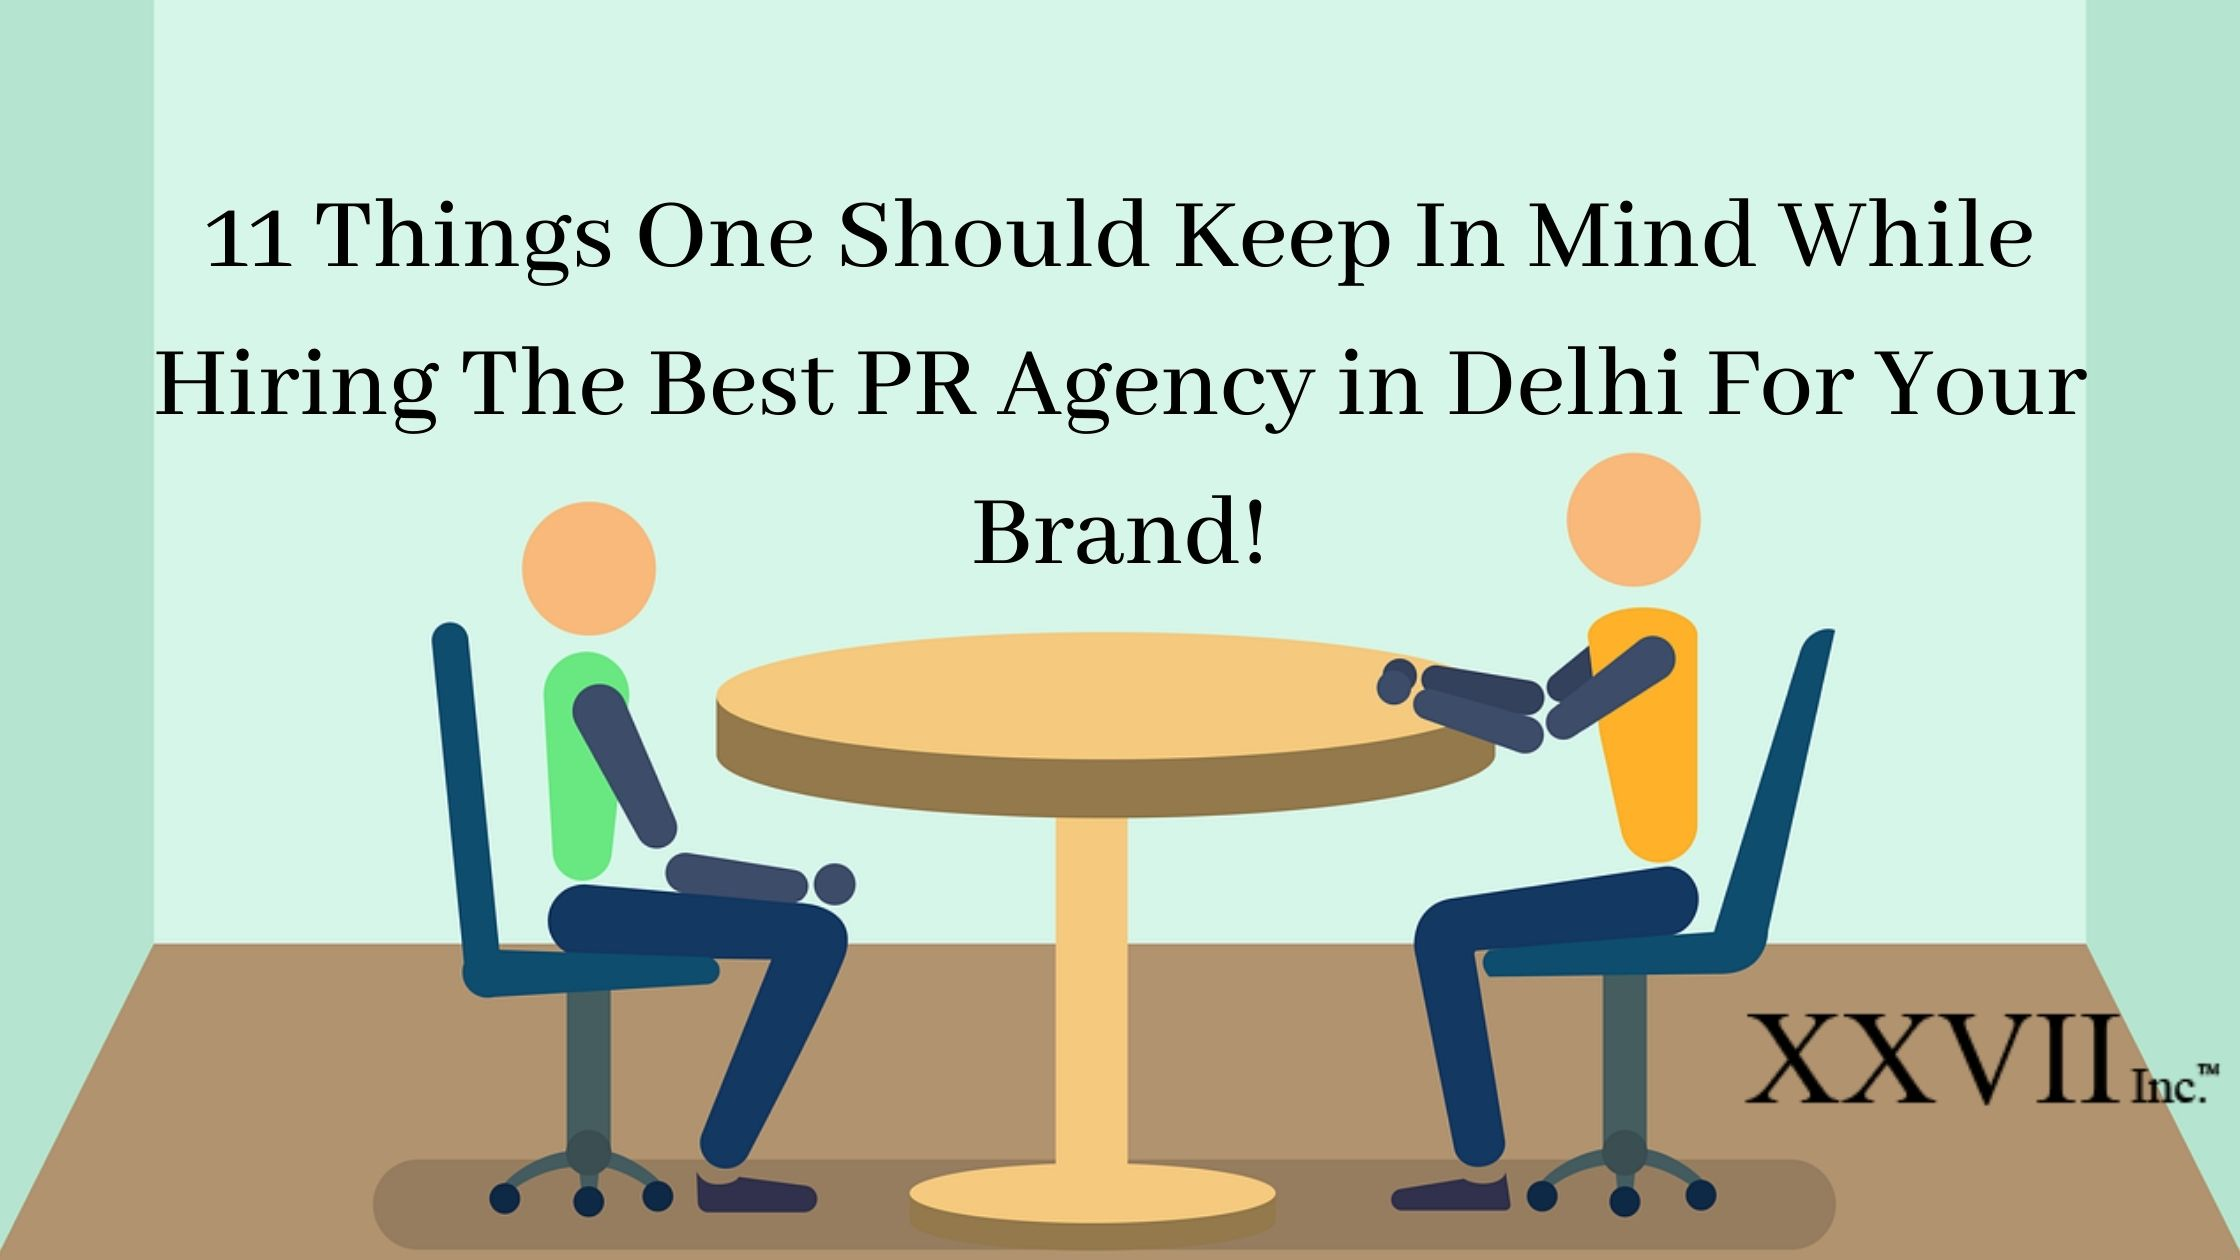 11 Things One Should Keep In Mind While Hiring The Best PR Agency In Delhi For Your Brand!